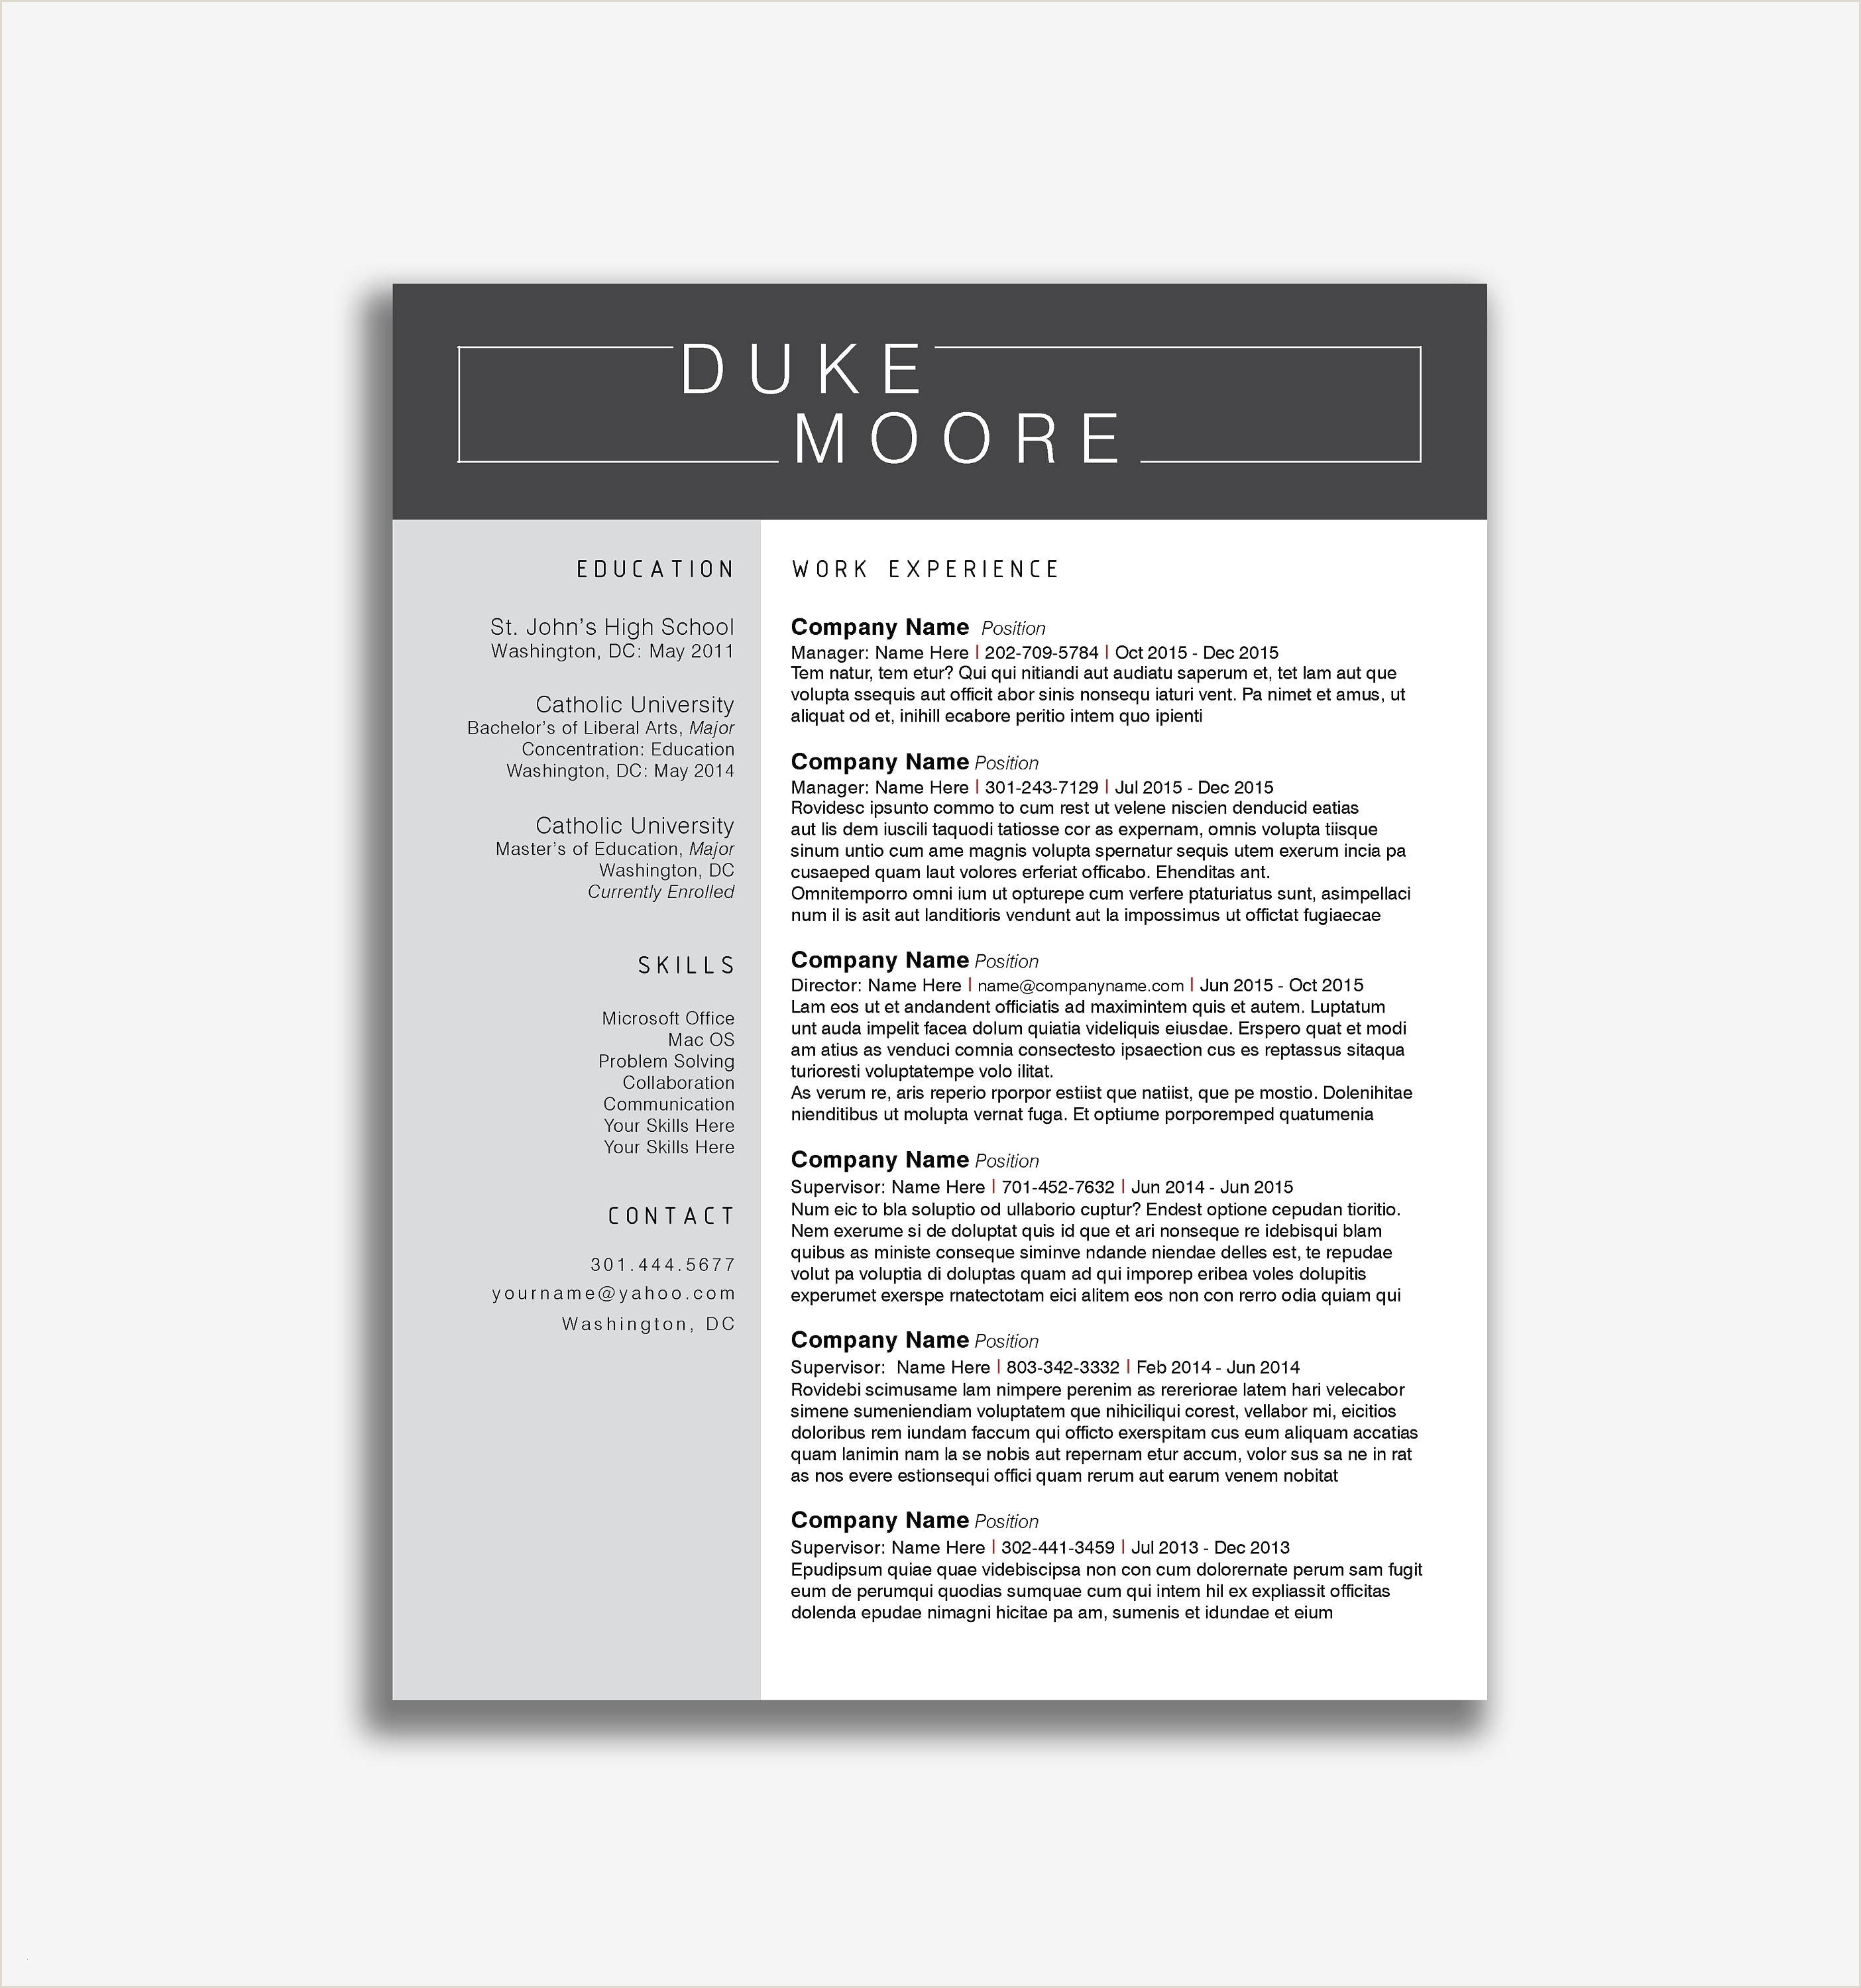 Sample Resume for Teachers without Experience Elegant Cover